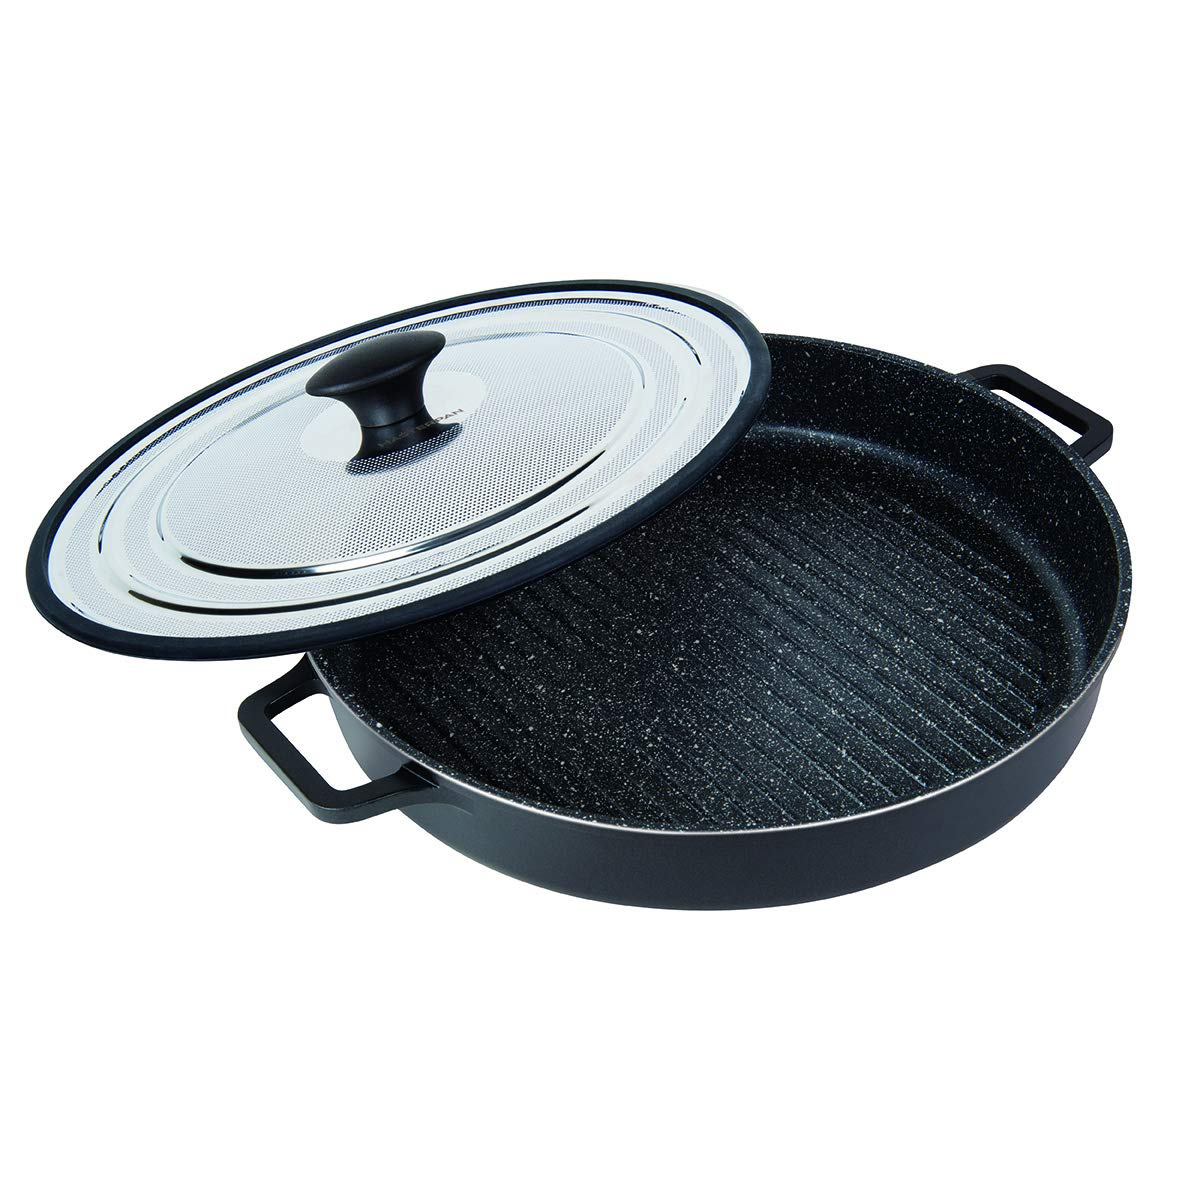 MasterPan Non-Stick Stovetop Oven Grill Pan with Heat-in Steam-Out Lid, nonstick cookware, 12'', Black, MP-107 by Master Pan